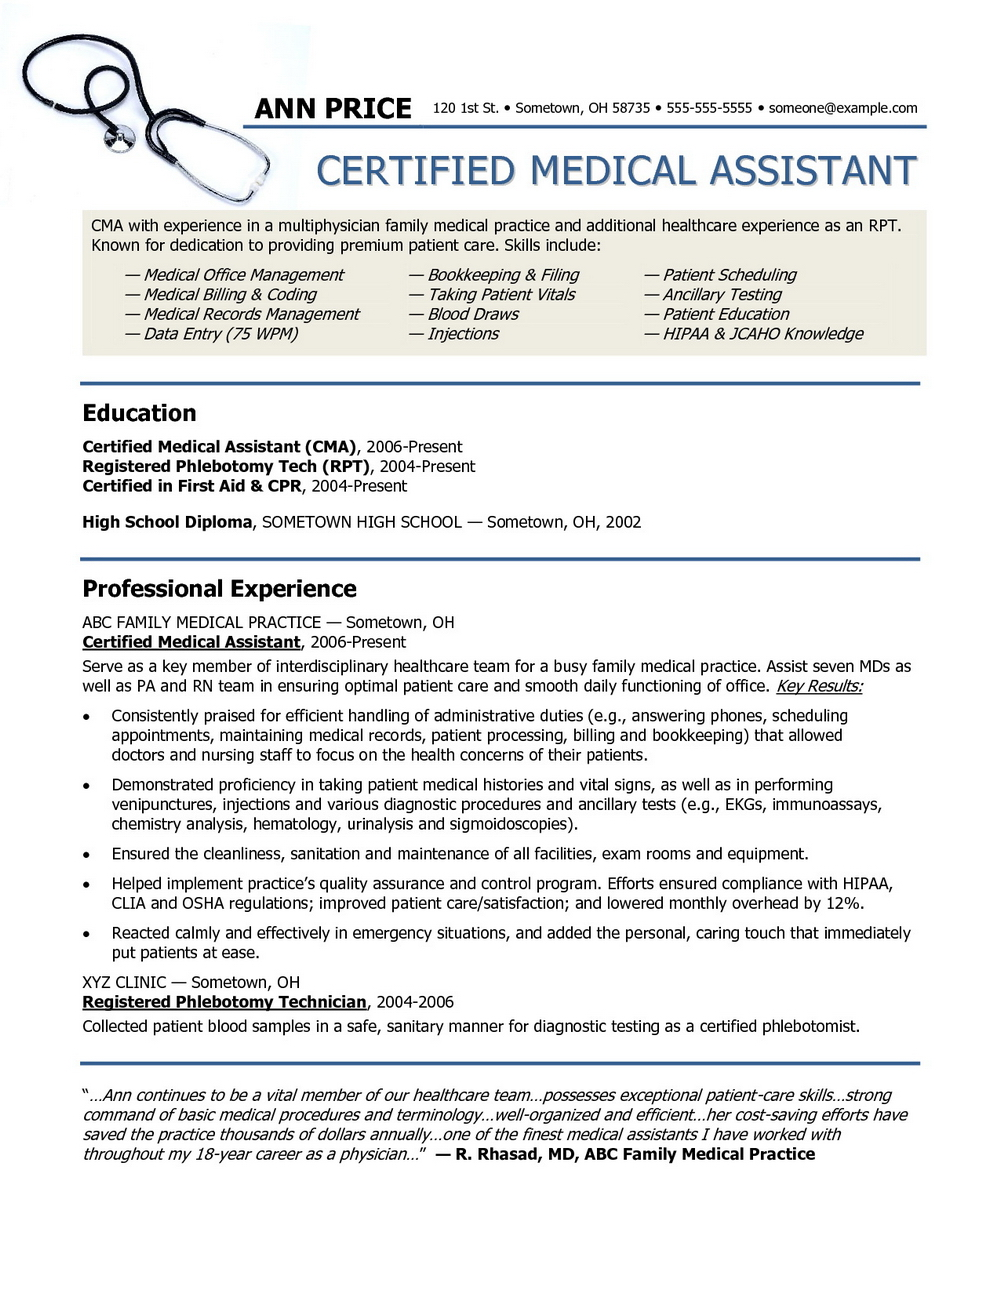 Medical Assistant Resume Samples Free